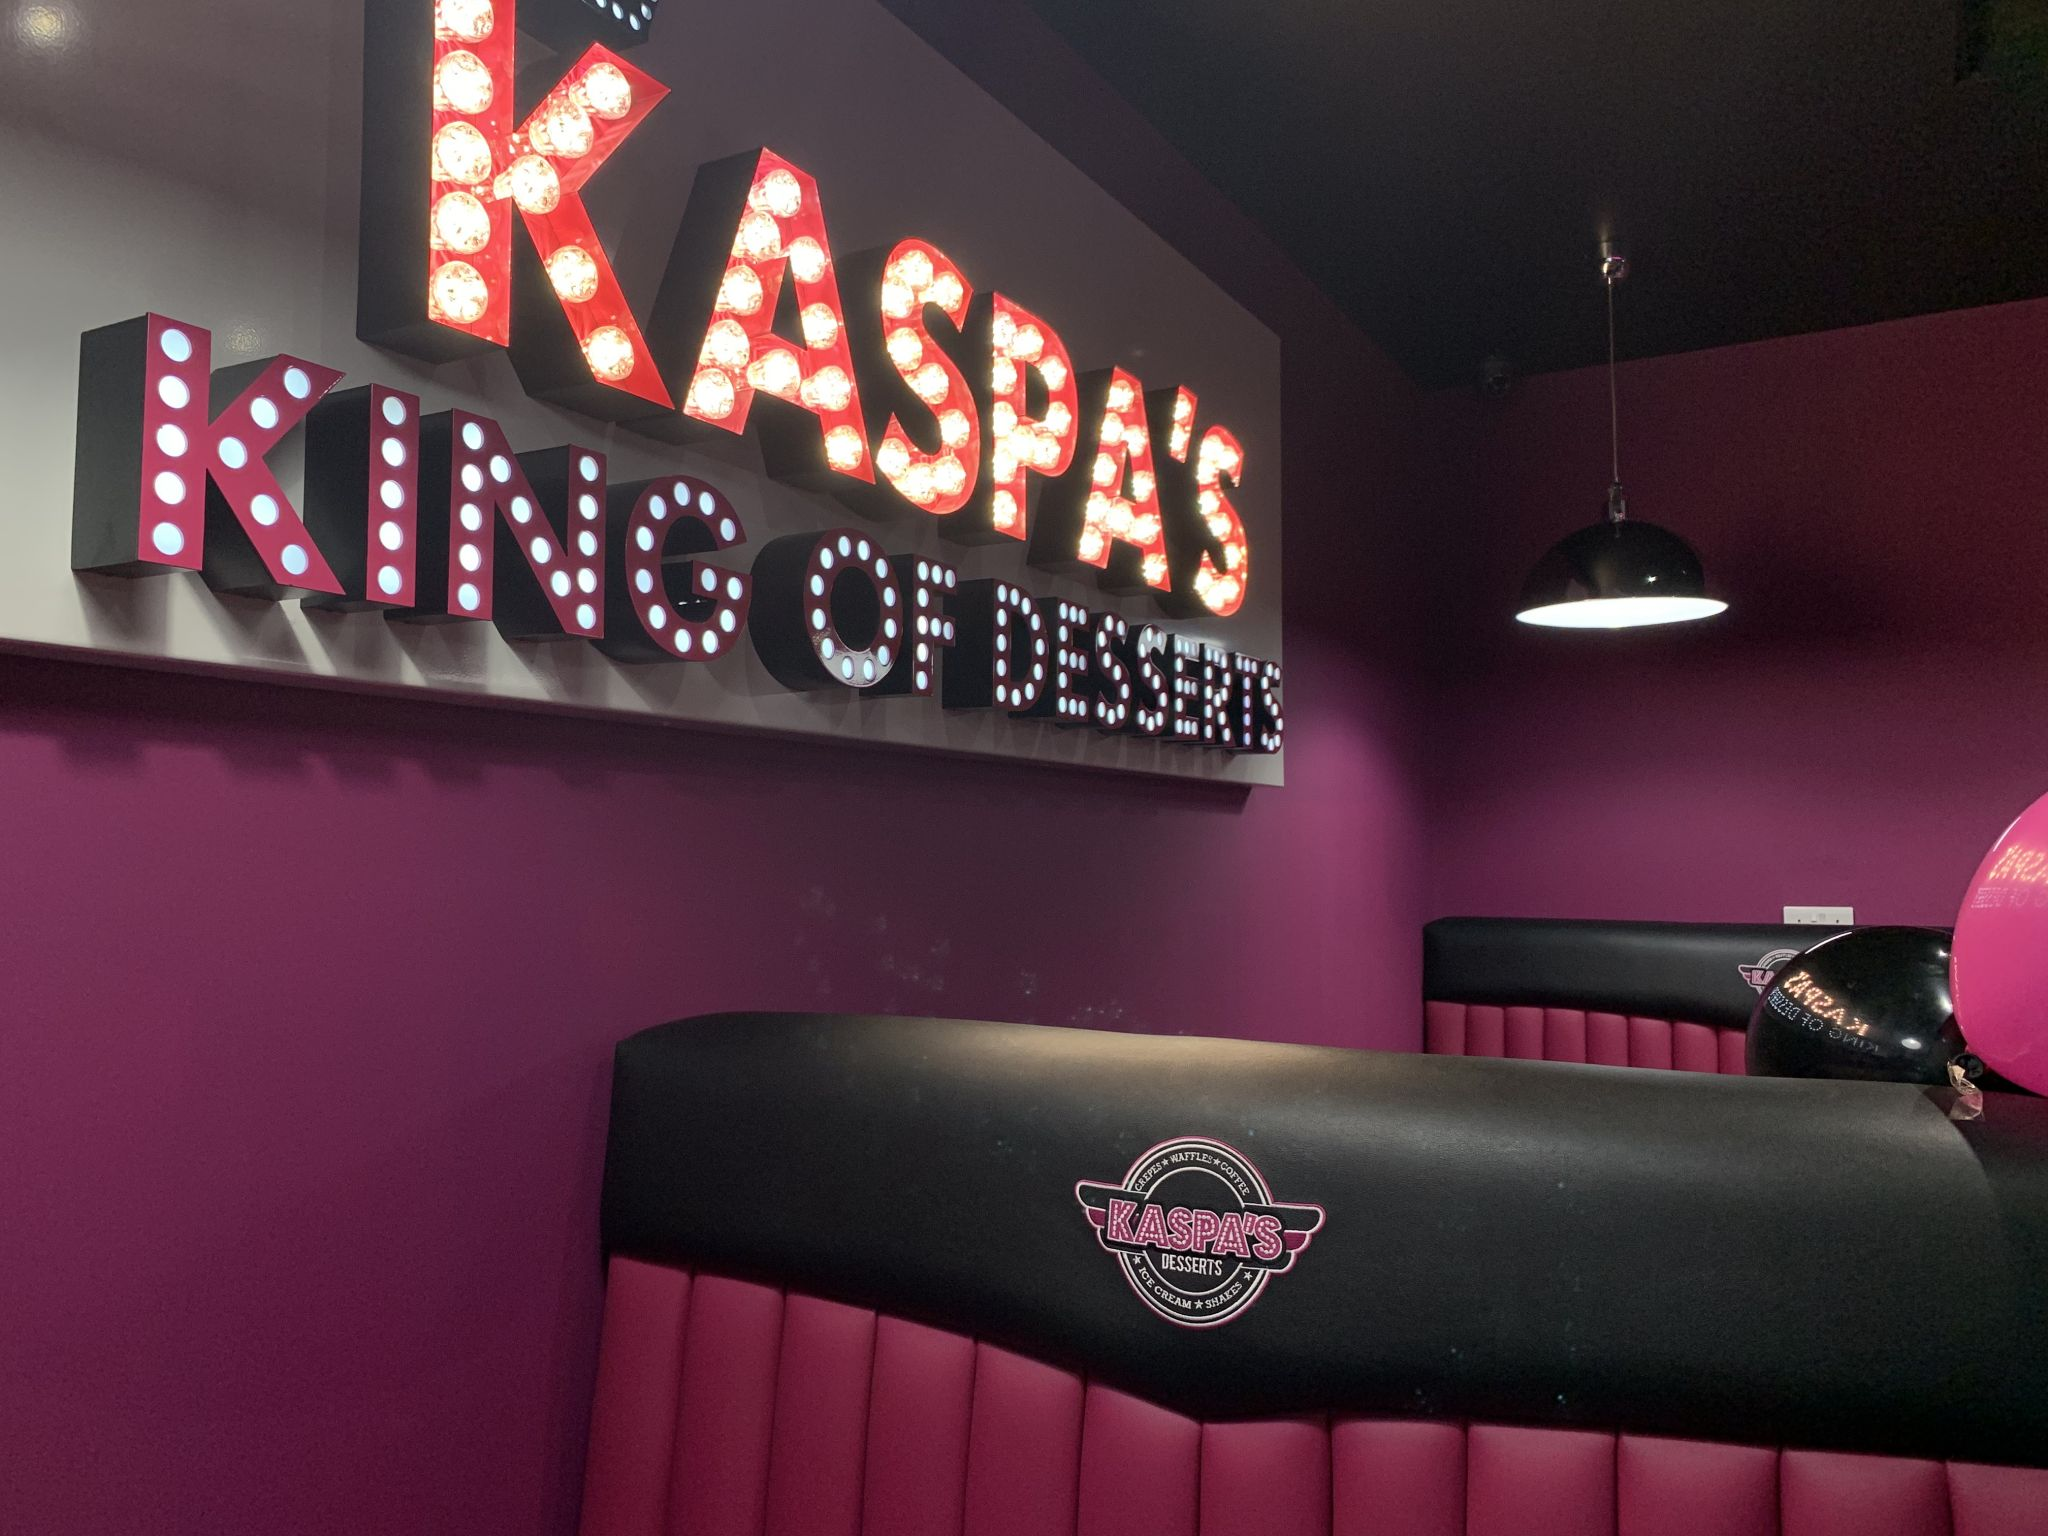 Kaspa S Darlington The King Of Desserts The Freckled